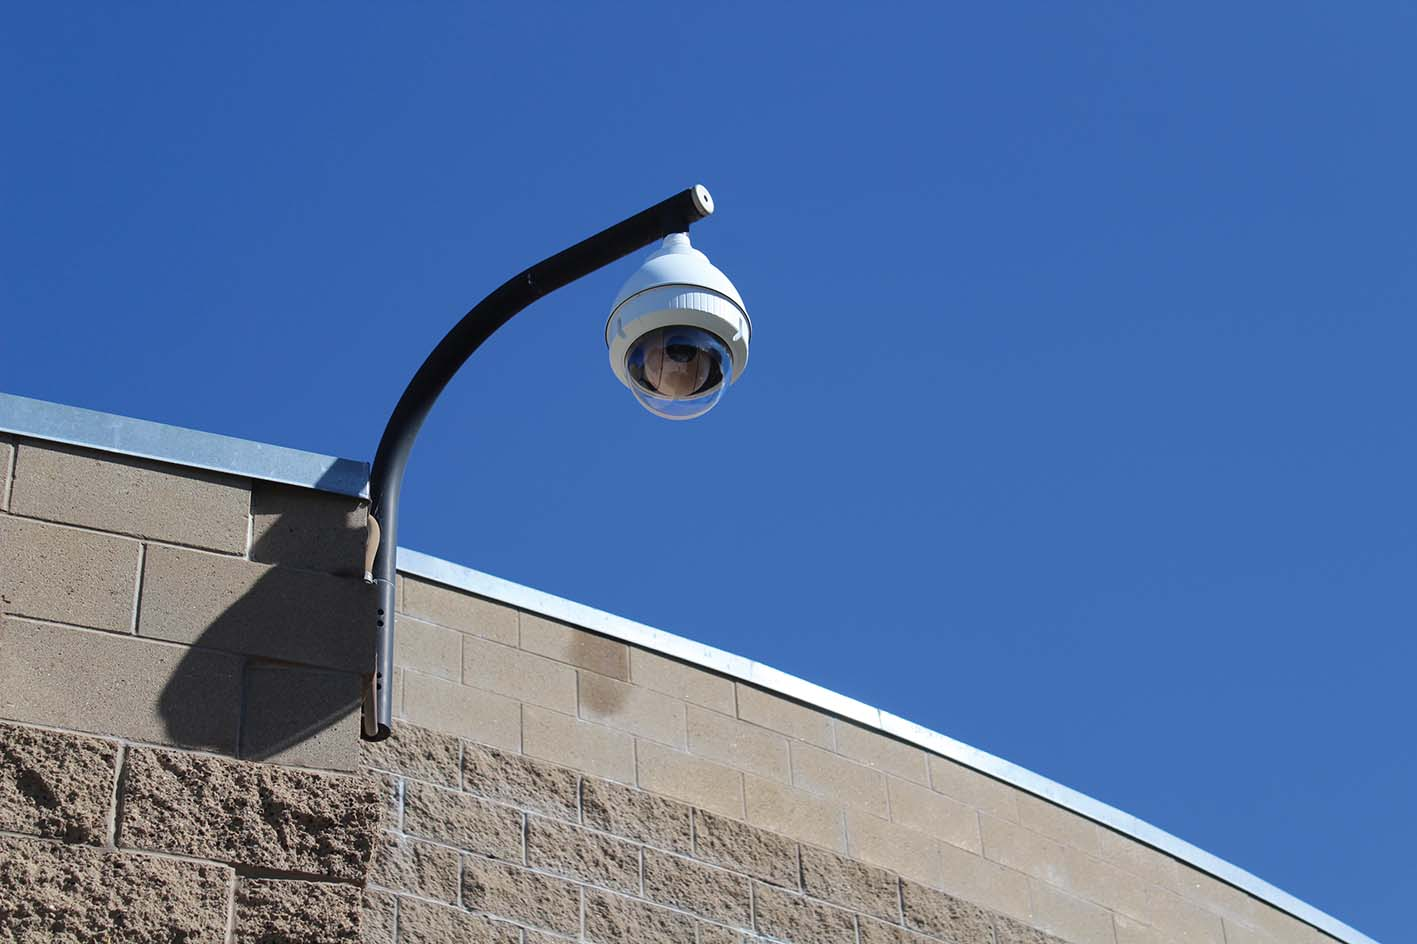 New and improved security camera system installed throughout campus to improve overall safety and reduce theft.